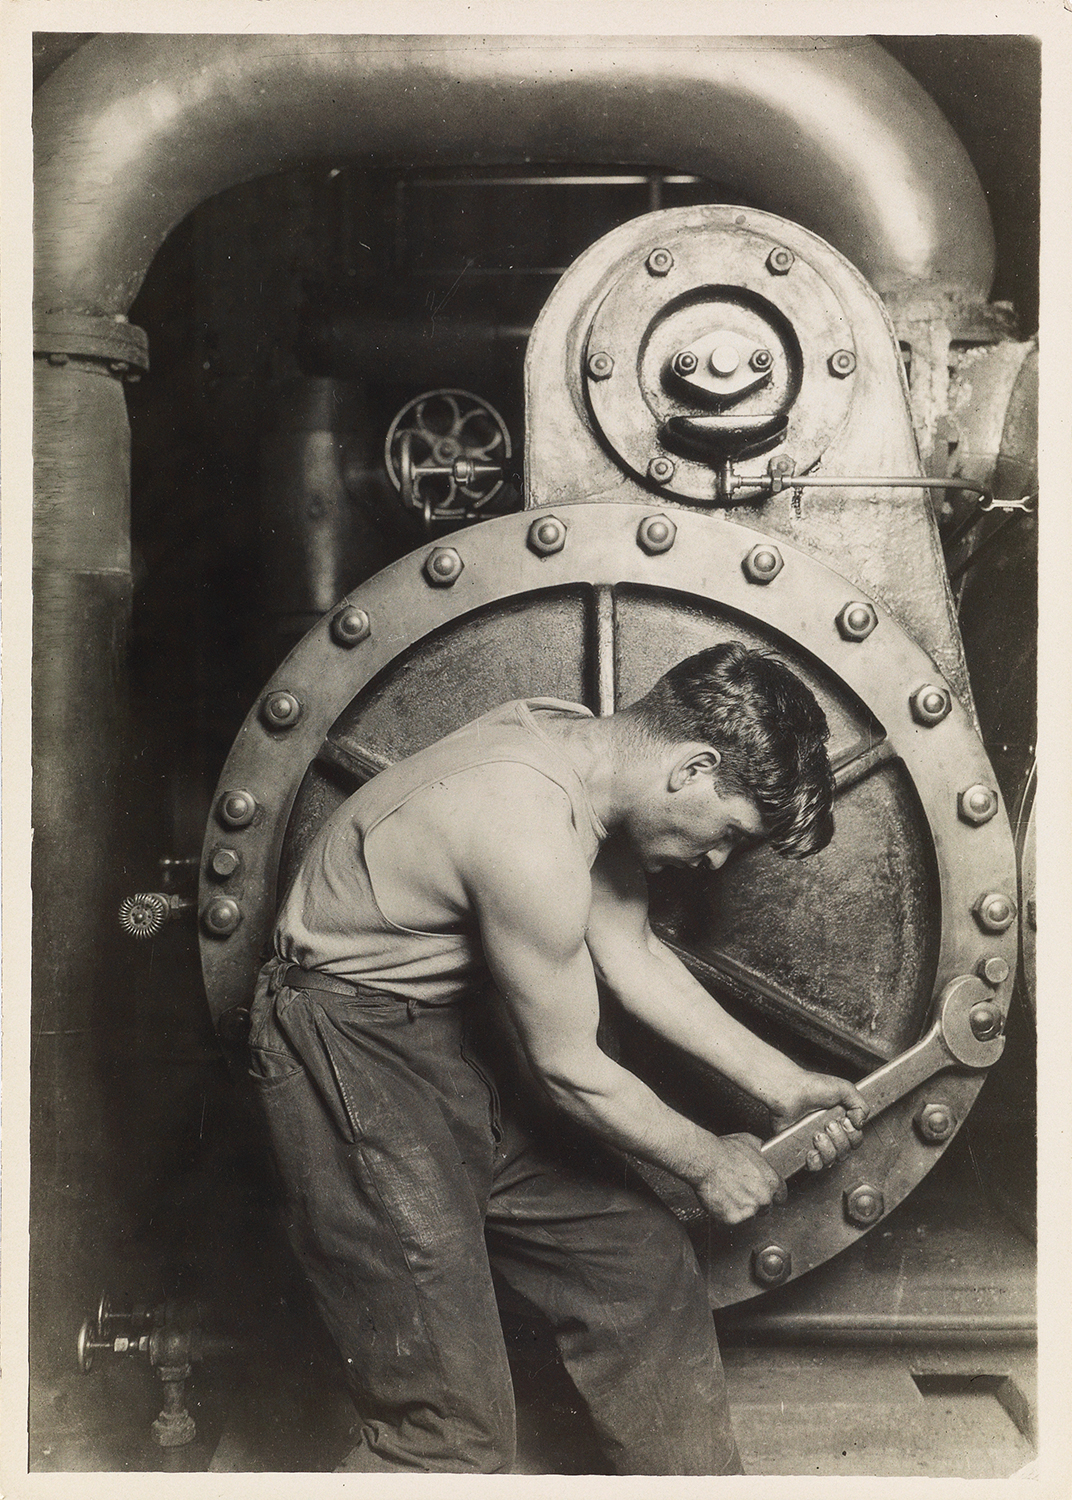 Lewis Hine's Mechanic at Steam Pump in Electric Power House, aka Power House Mechanic, a photograph printed circa 1921.